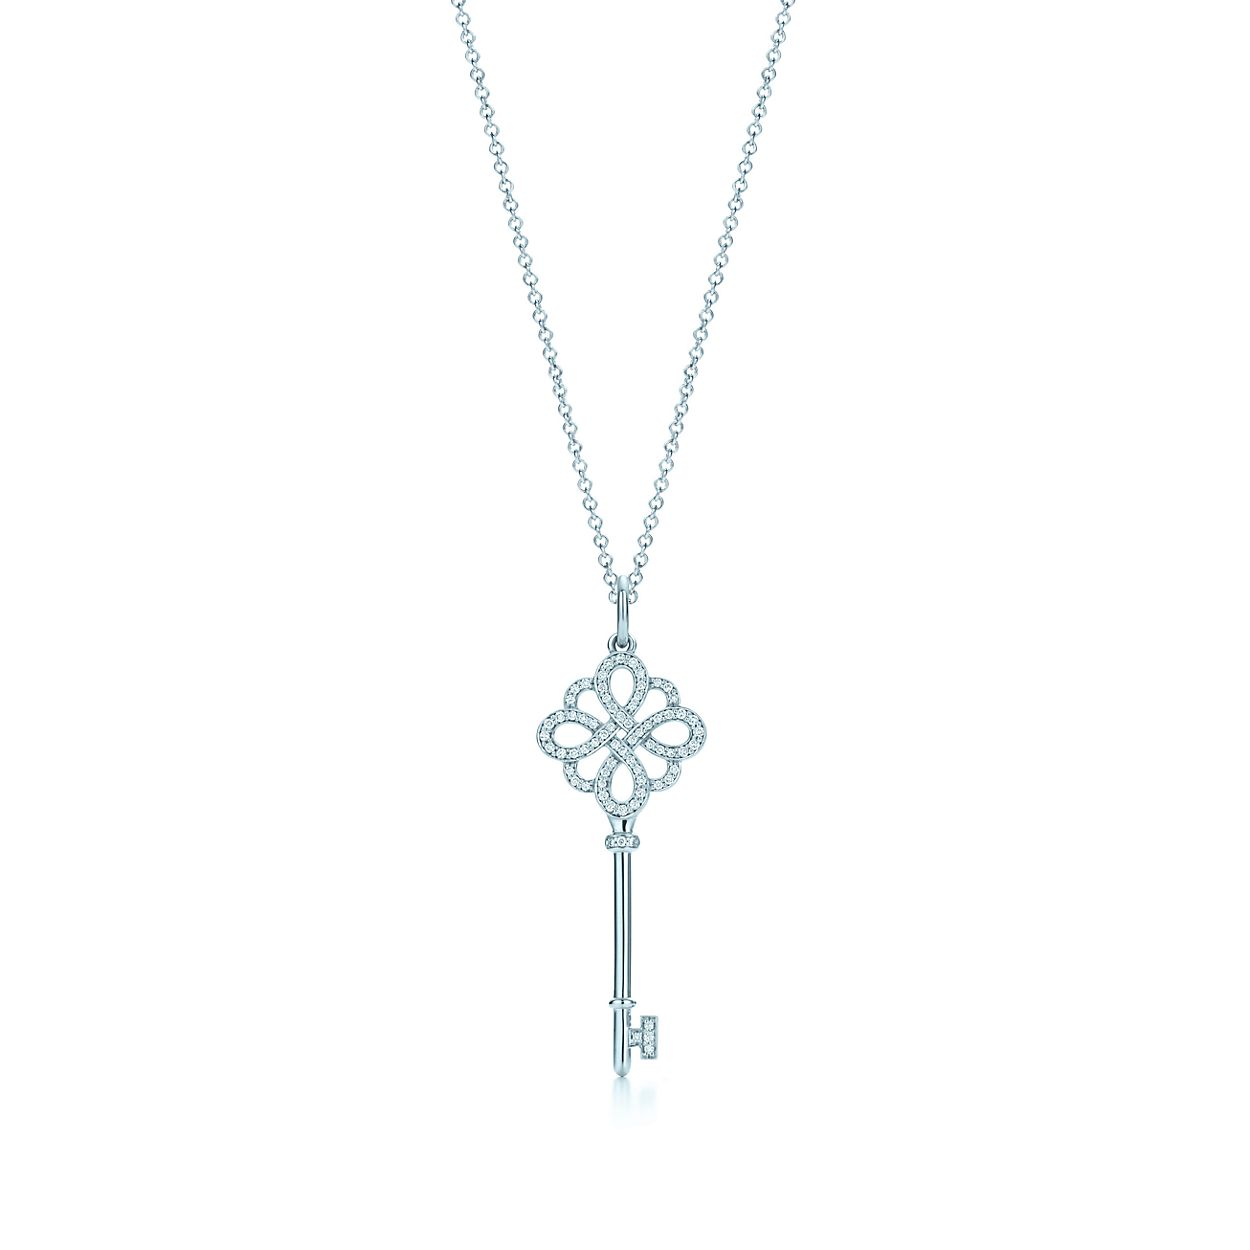 Tiffany keys knot key pendant in 18k white gold with diamonds on a tiffany keysknot key pendant aloadofball Choice Image